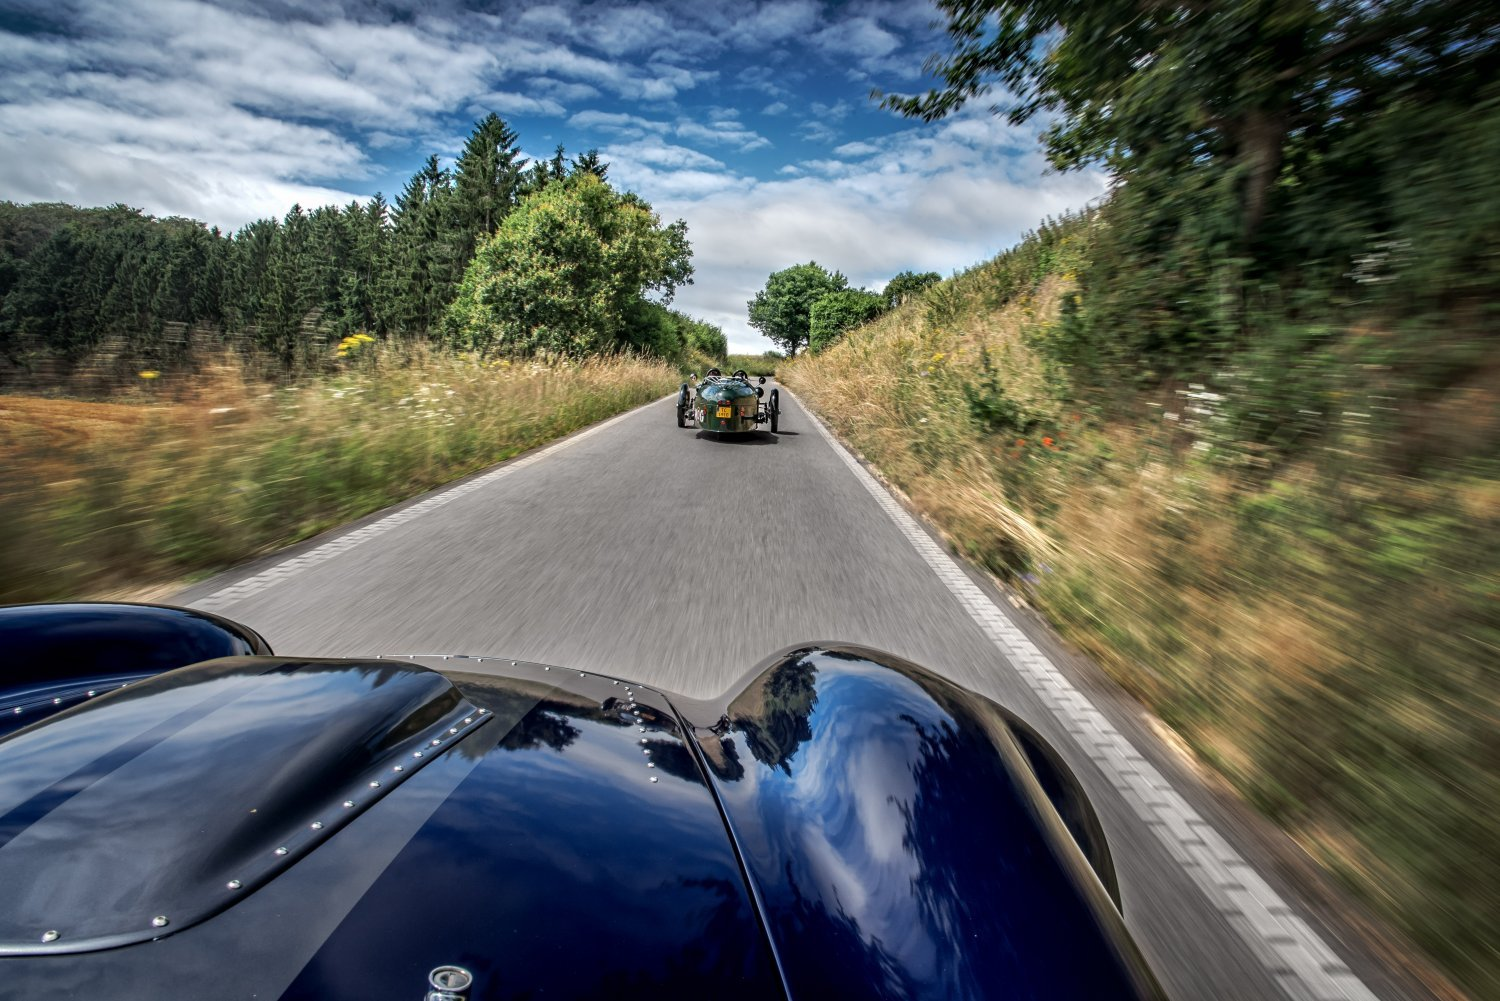 A Cobra chasing a Morgan 3-wheeler